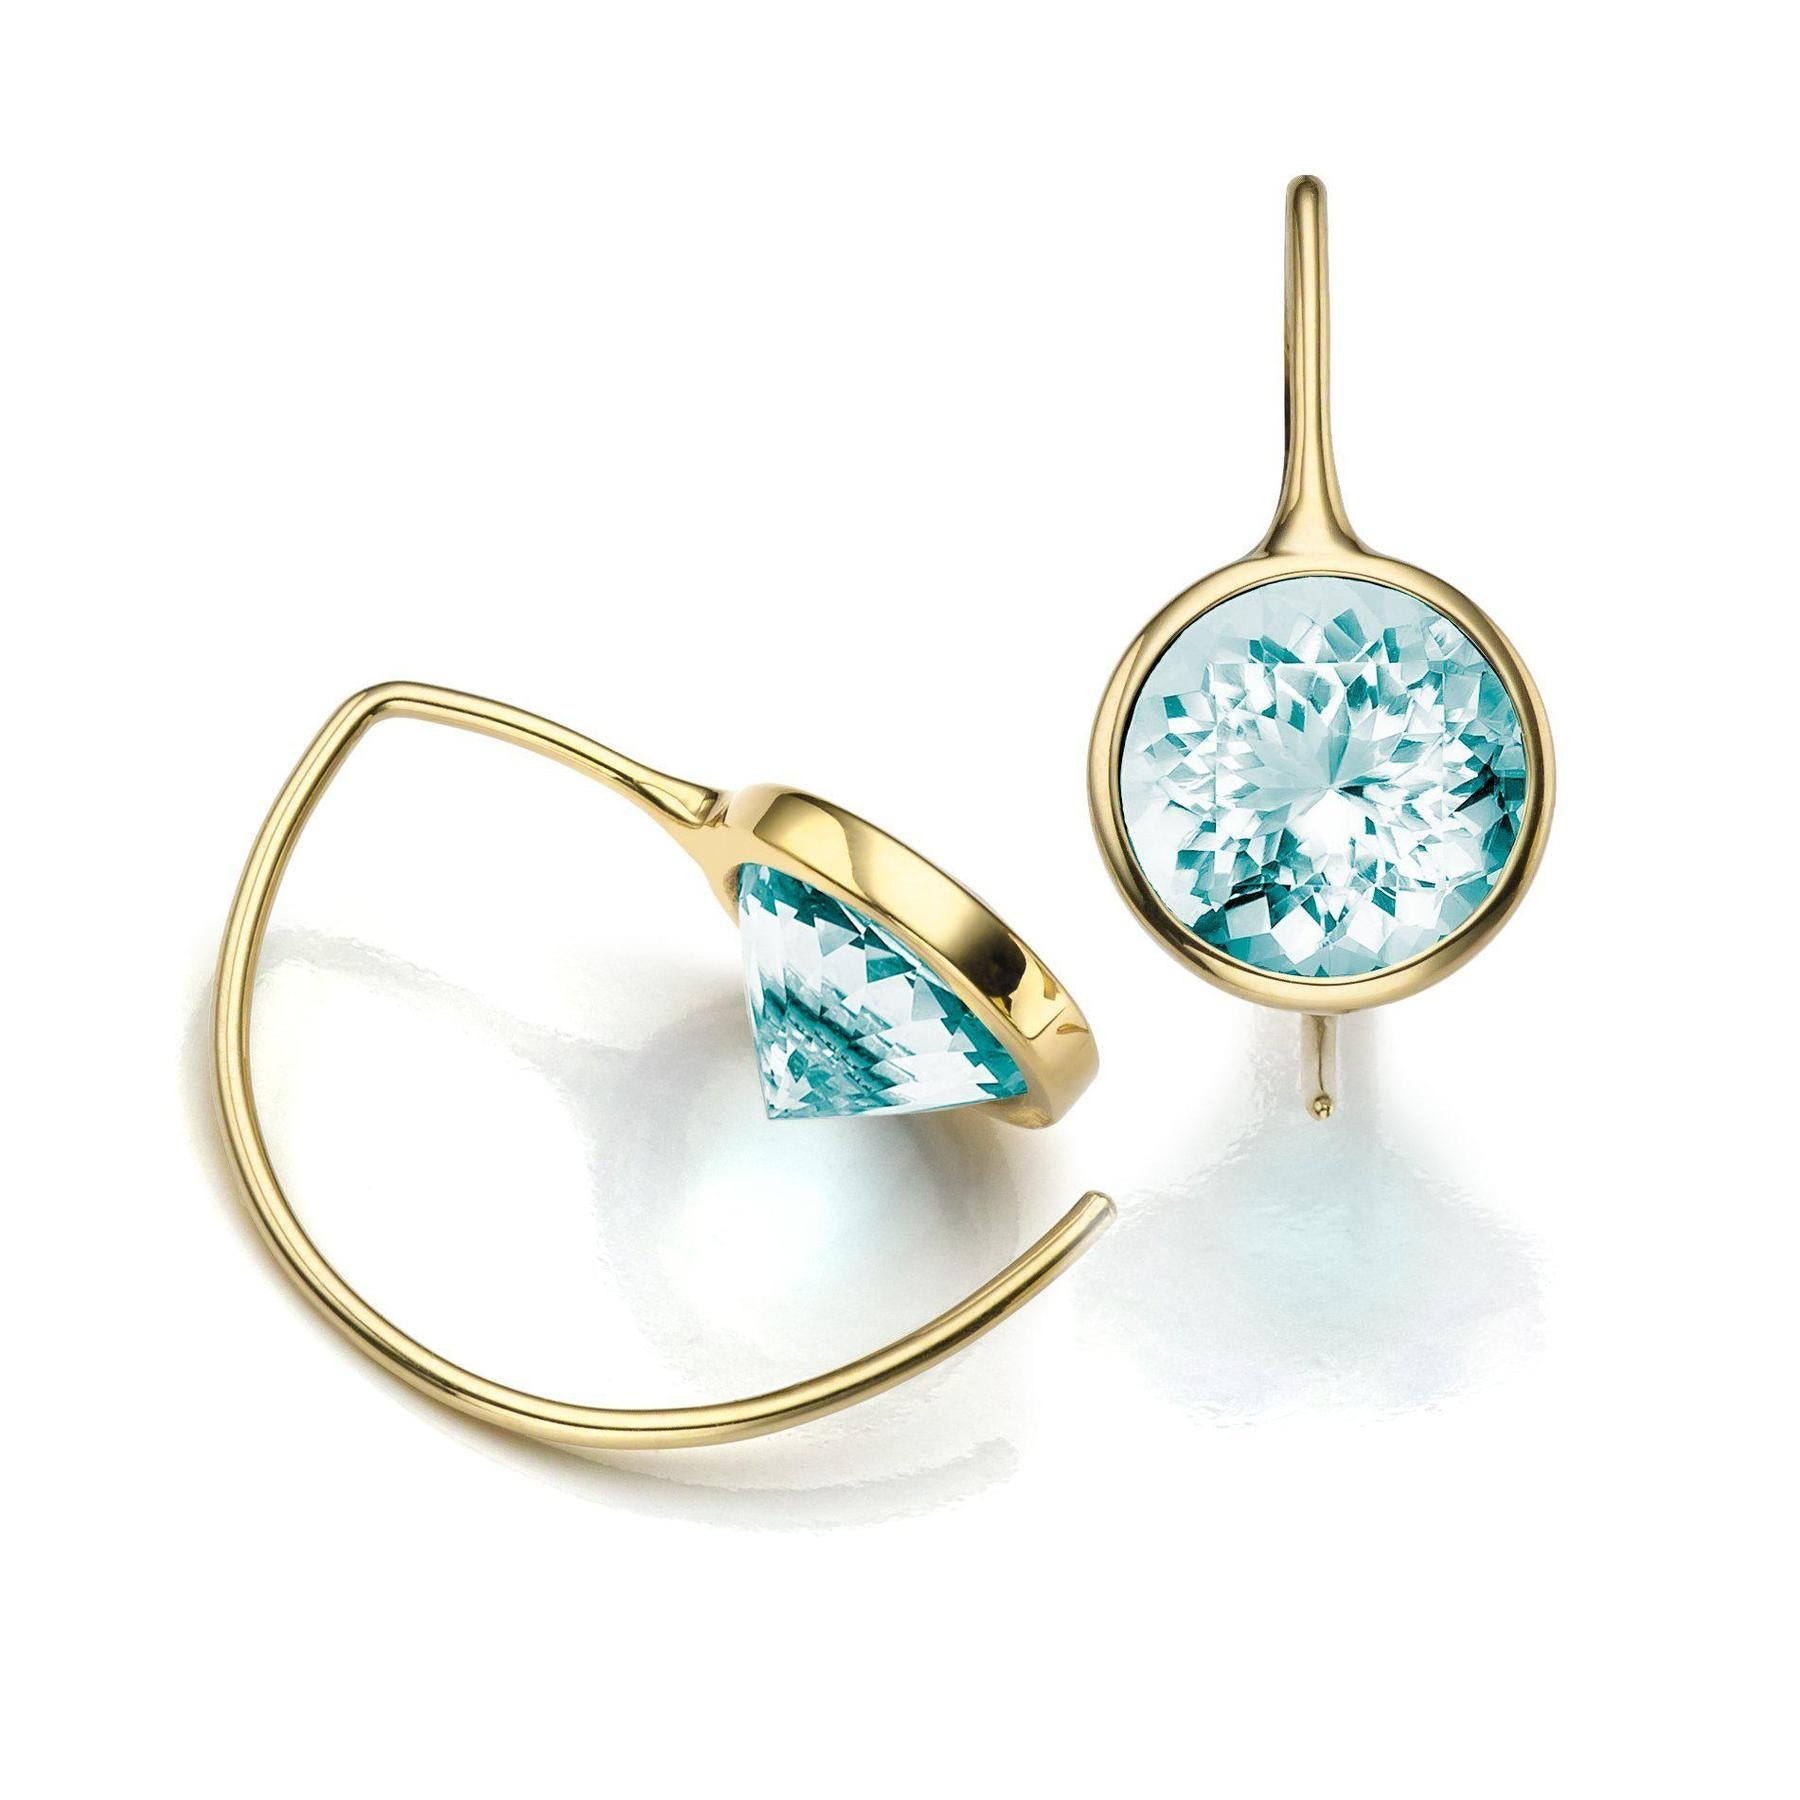 Toby Pomeroy 14K Eco Gold Blue Topaz Comet Earrings